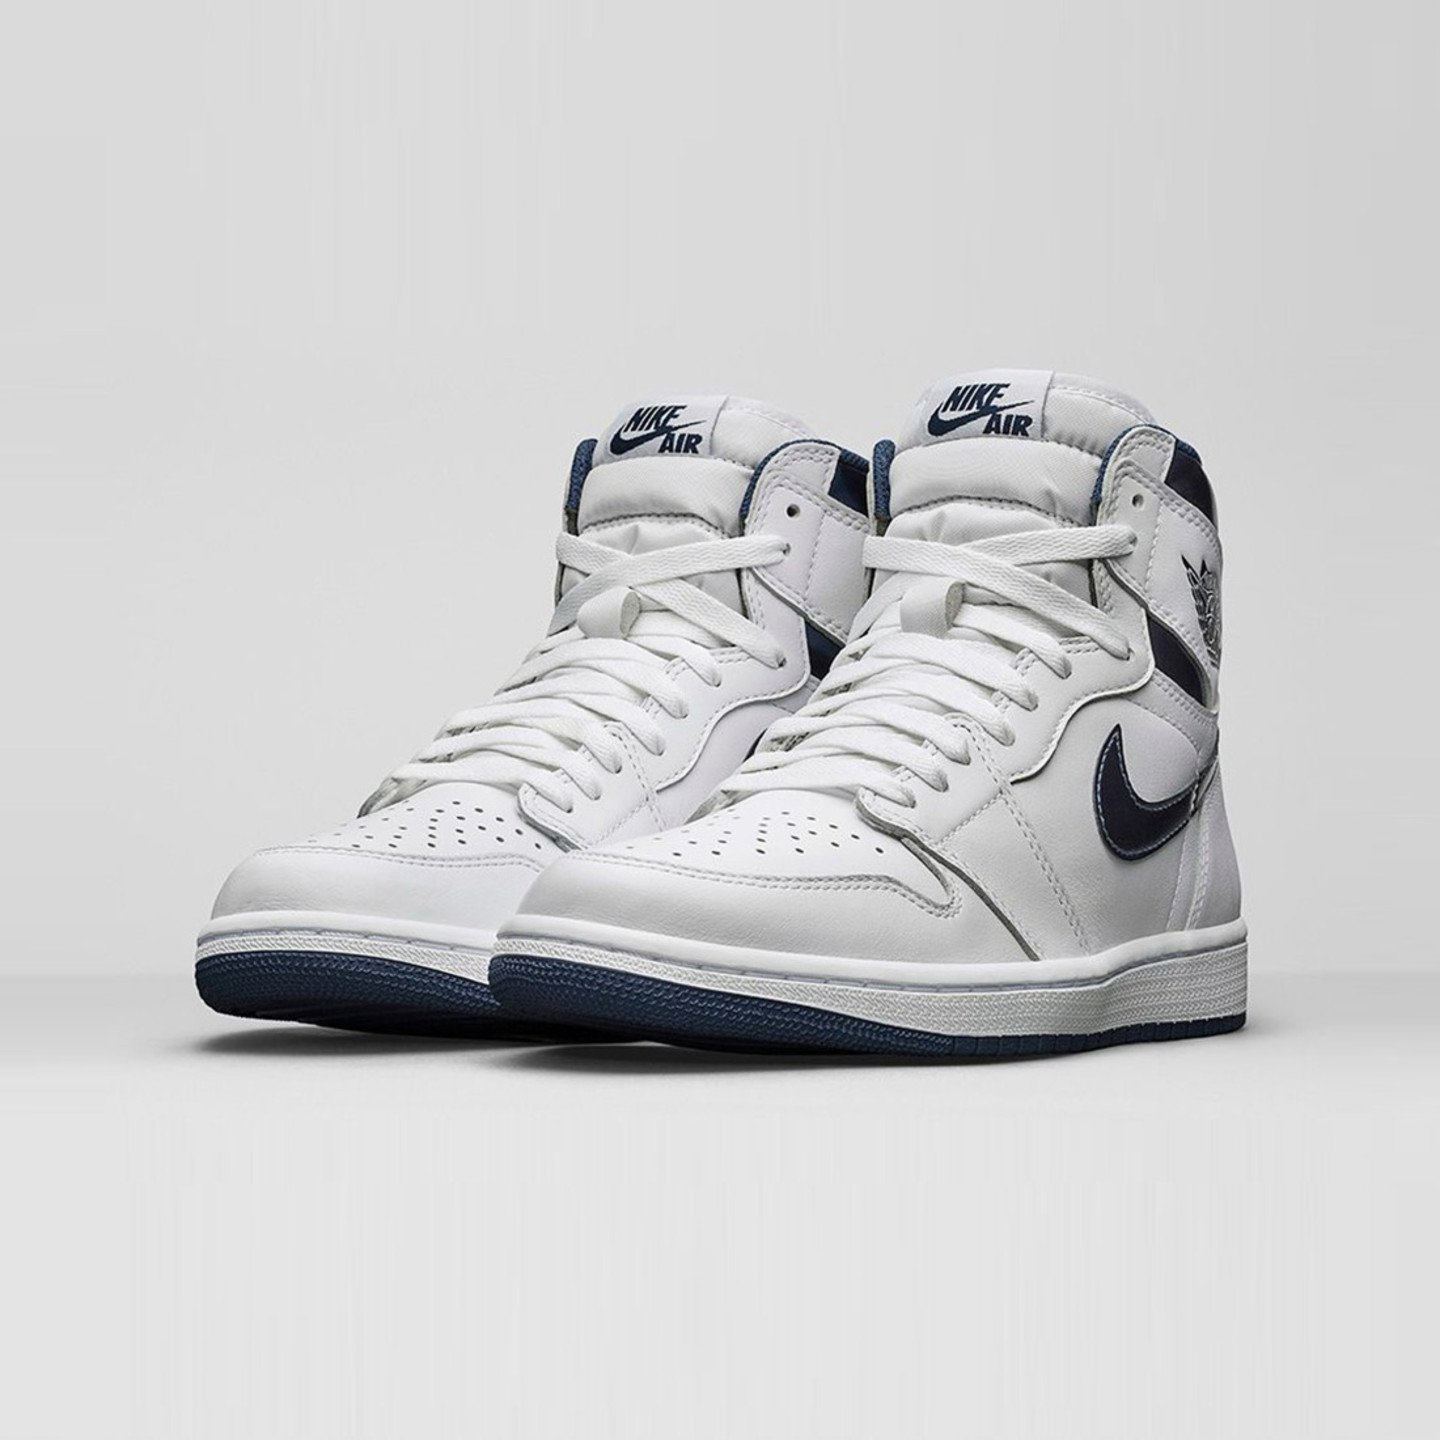 Jordan Air Jordan 1 Retro High OG 'Metallic Navy' White / Midnight Navy 555088-106-44.5